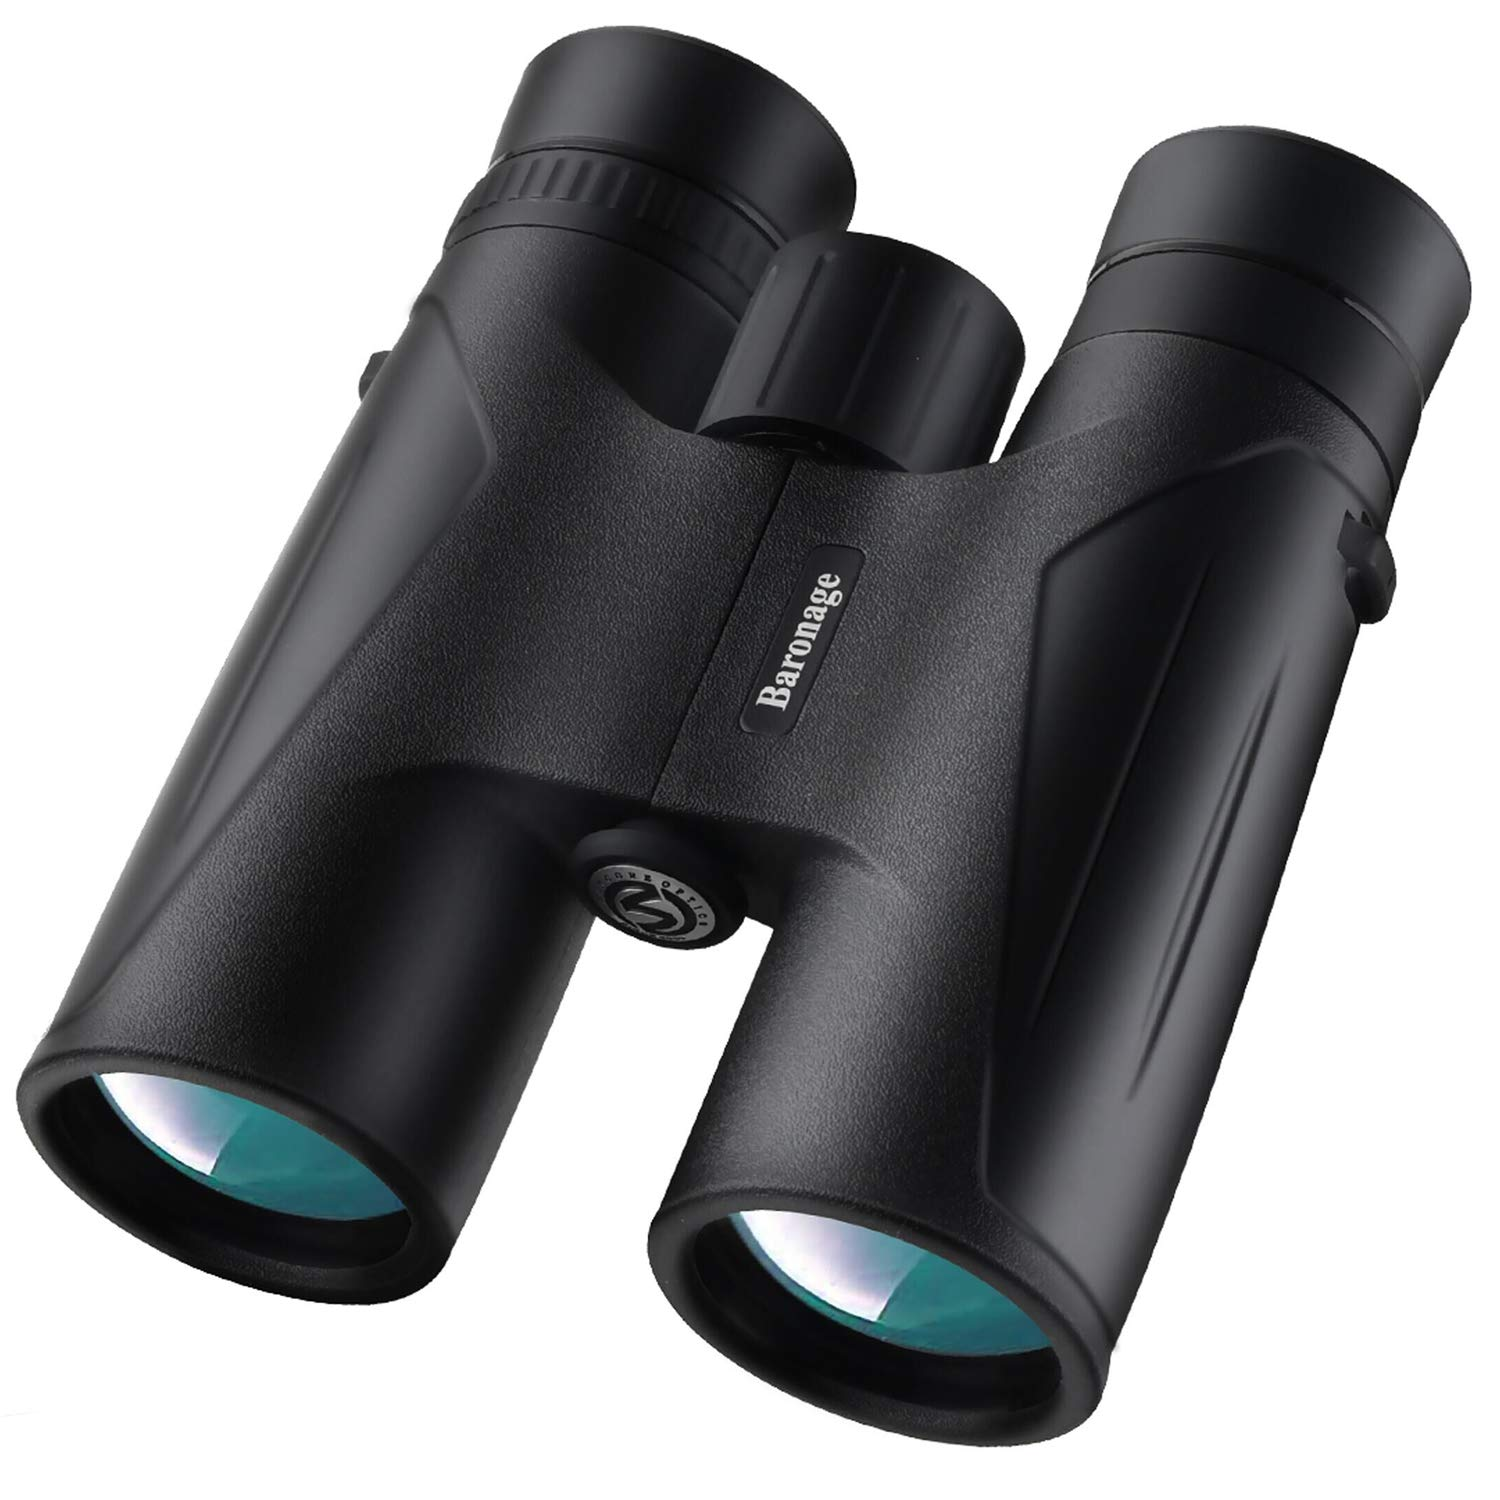 Kejiluosi 10×42 Waterproof Binoculars for Adults, High Power Nitrogen-Filled BAK4 Prism FMC Lens for Bird Watching Concerts and Outdoor Sports